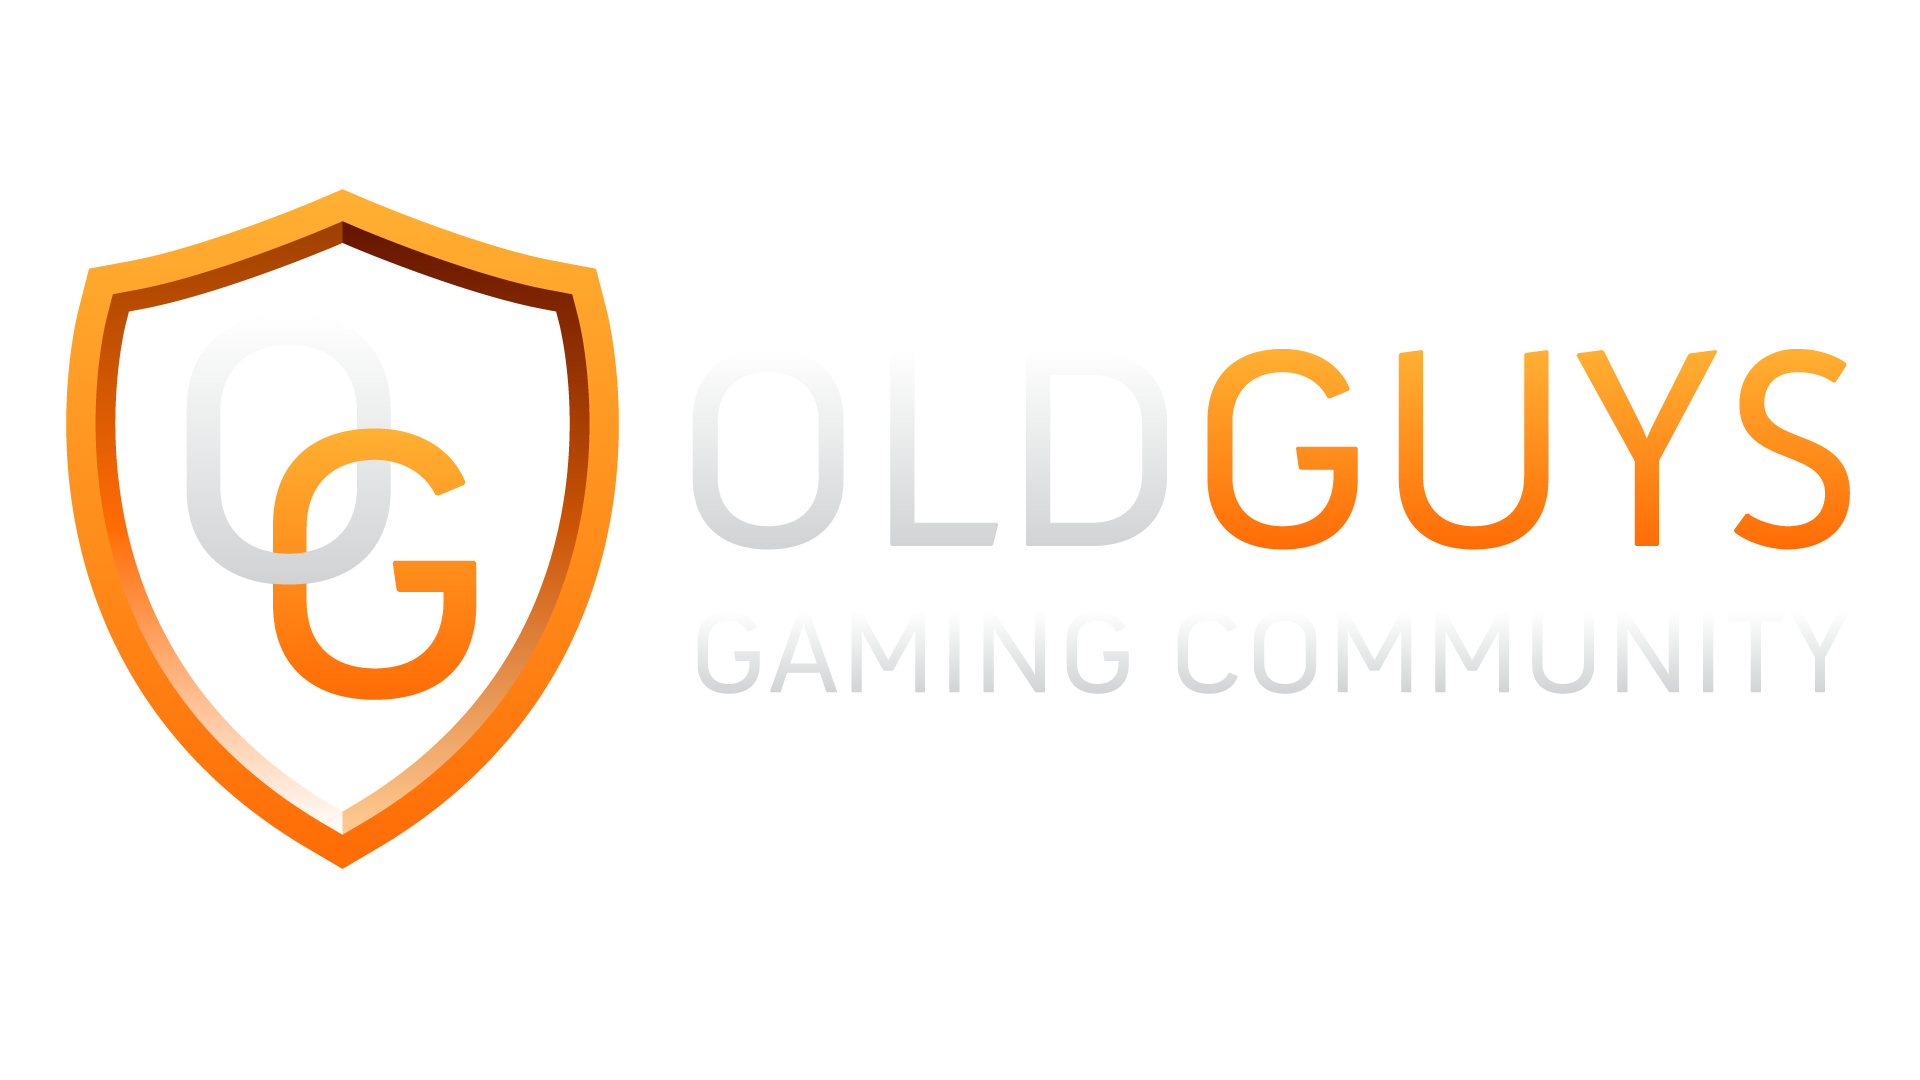 [Bild: OldGuys-logo-blackBG-HD.png]